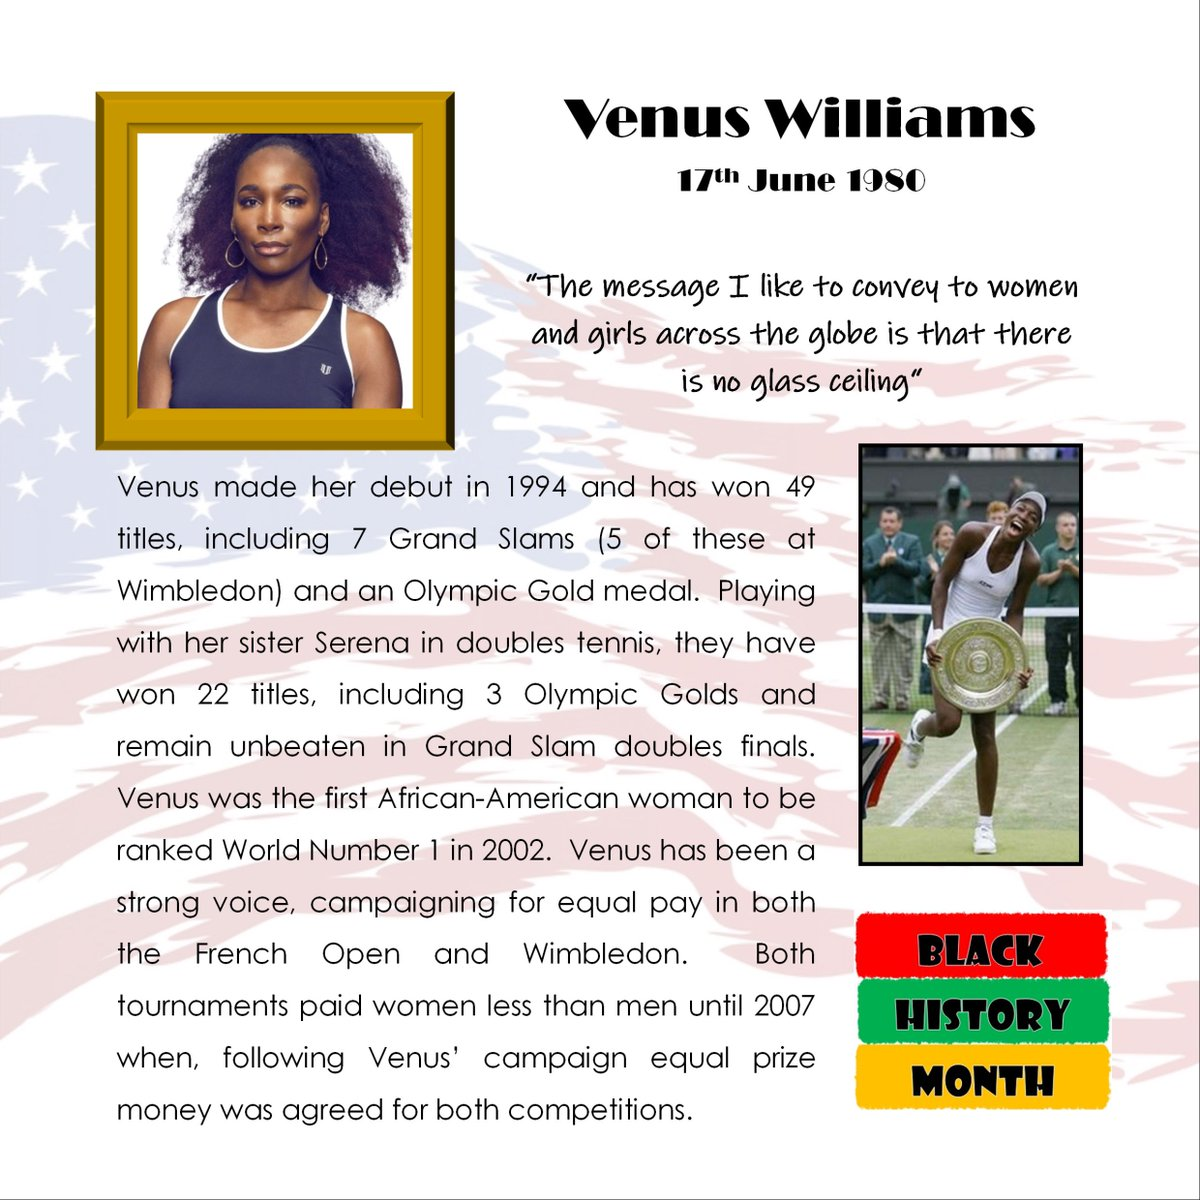 Five times #Wimbledon champion @Venuseswilliams is our #blackhistorymonth star for today #blackhistorymonth2019 #BMH2019 #tennis @Wimbledon #Olympic #OlympicGold #GoldMedal #GrandSlam #USOpen #AustralianOpen #FrenchOpen #equalpay #womenrights